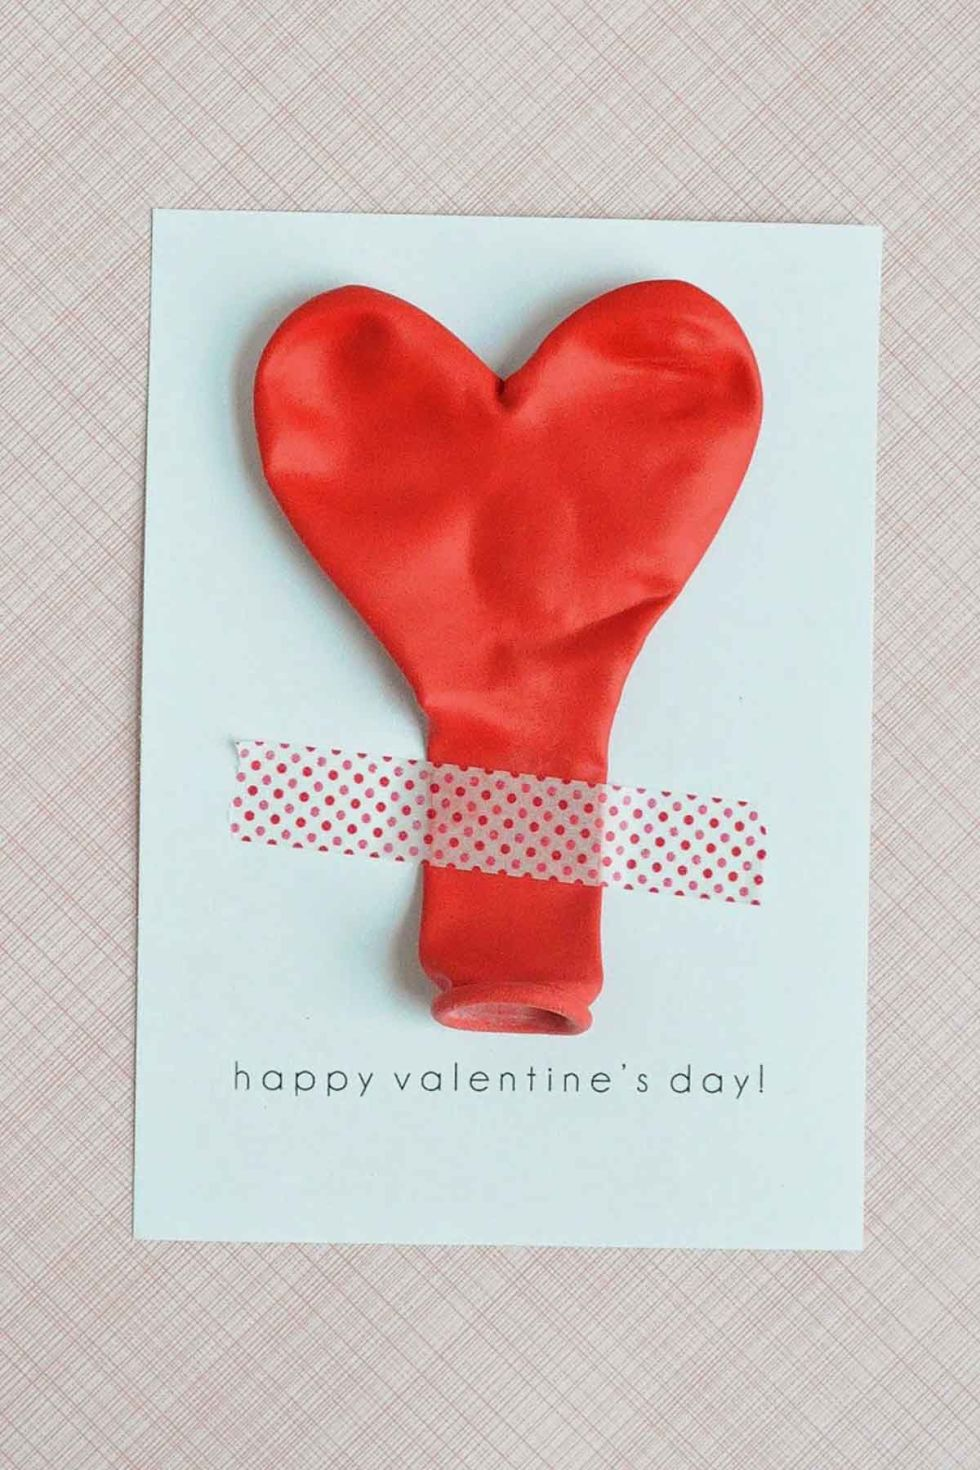 14 Cute DIY Valentines Day Cards Homemade Card Ideas for – Valentine Card Image